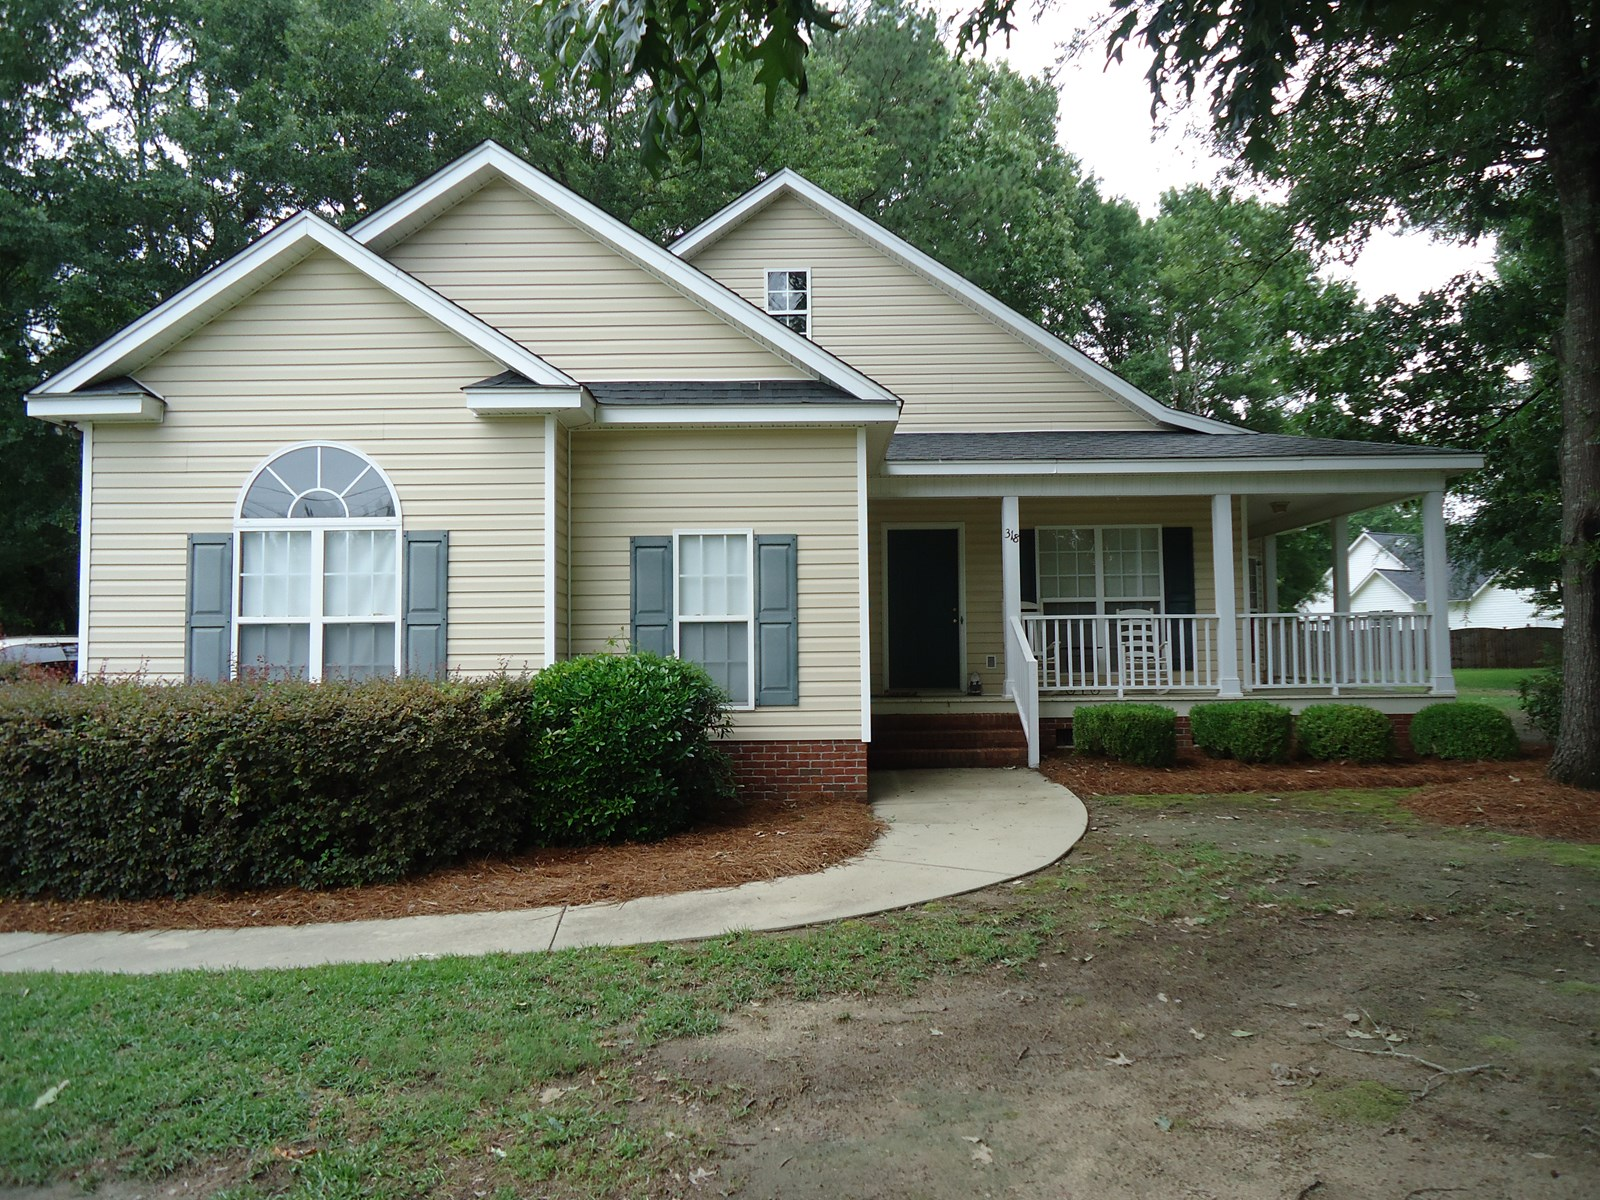 BEAUTIFUL THREE BEDROOM TWO BATH HOME FOR SALE IN CAMDEN, SC